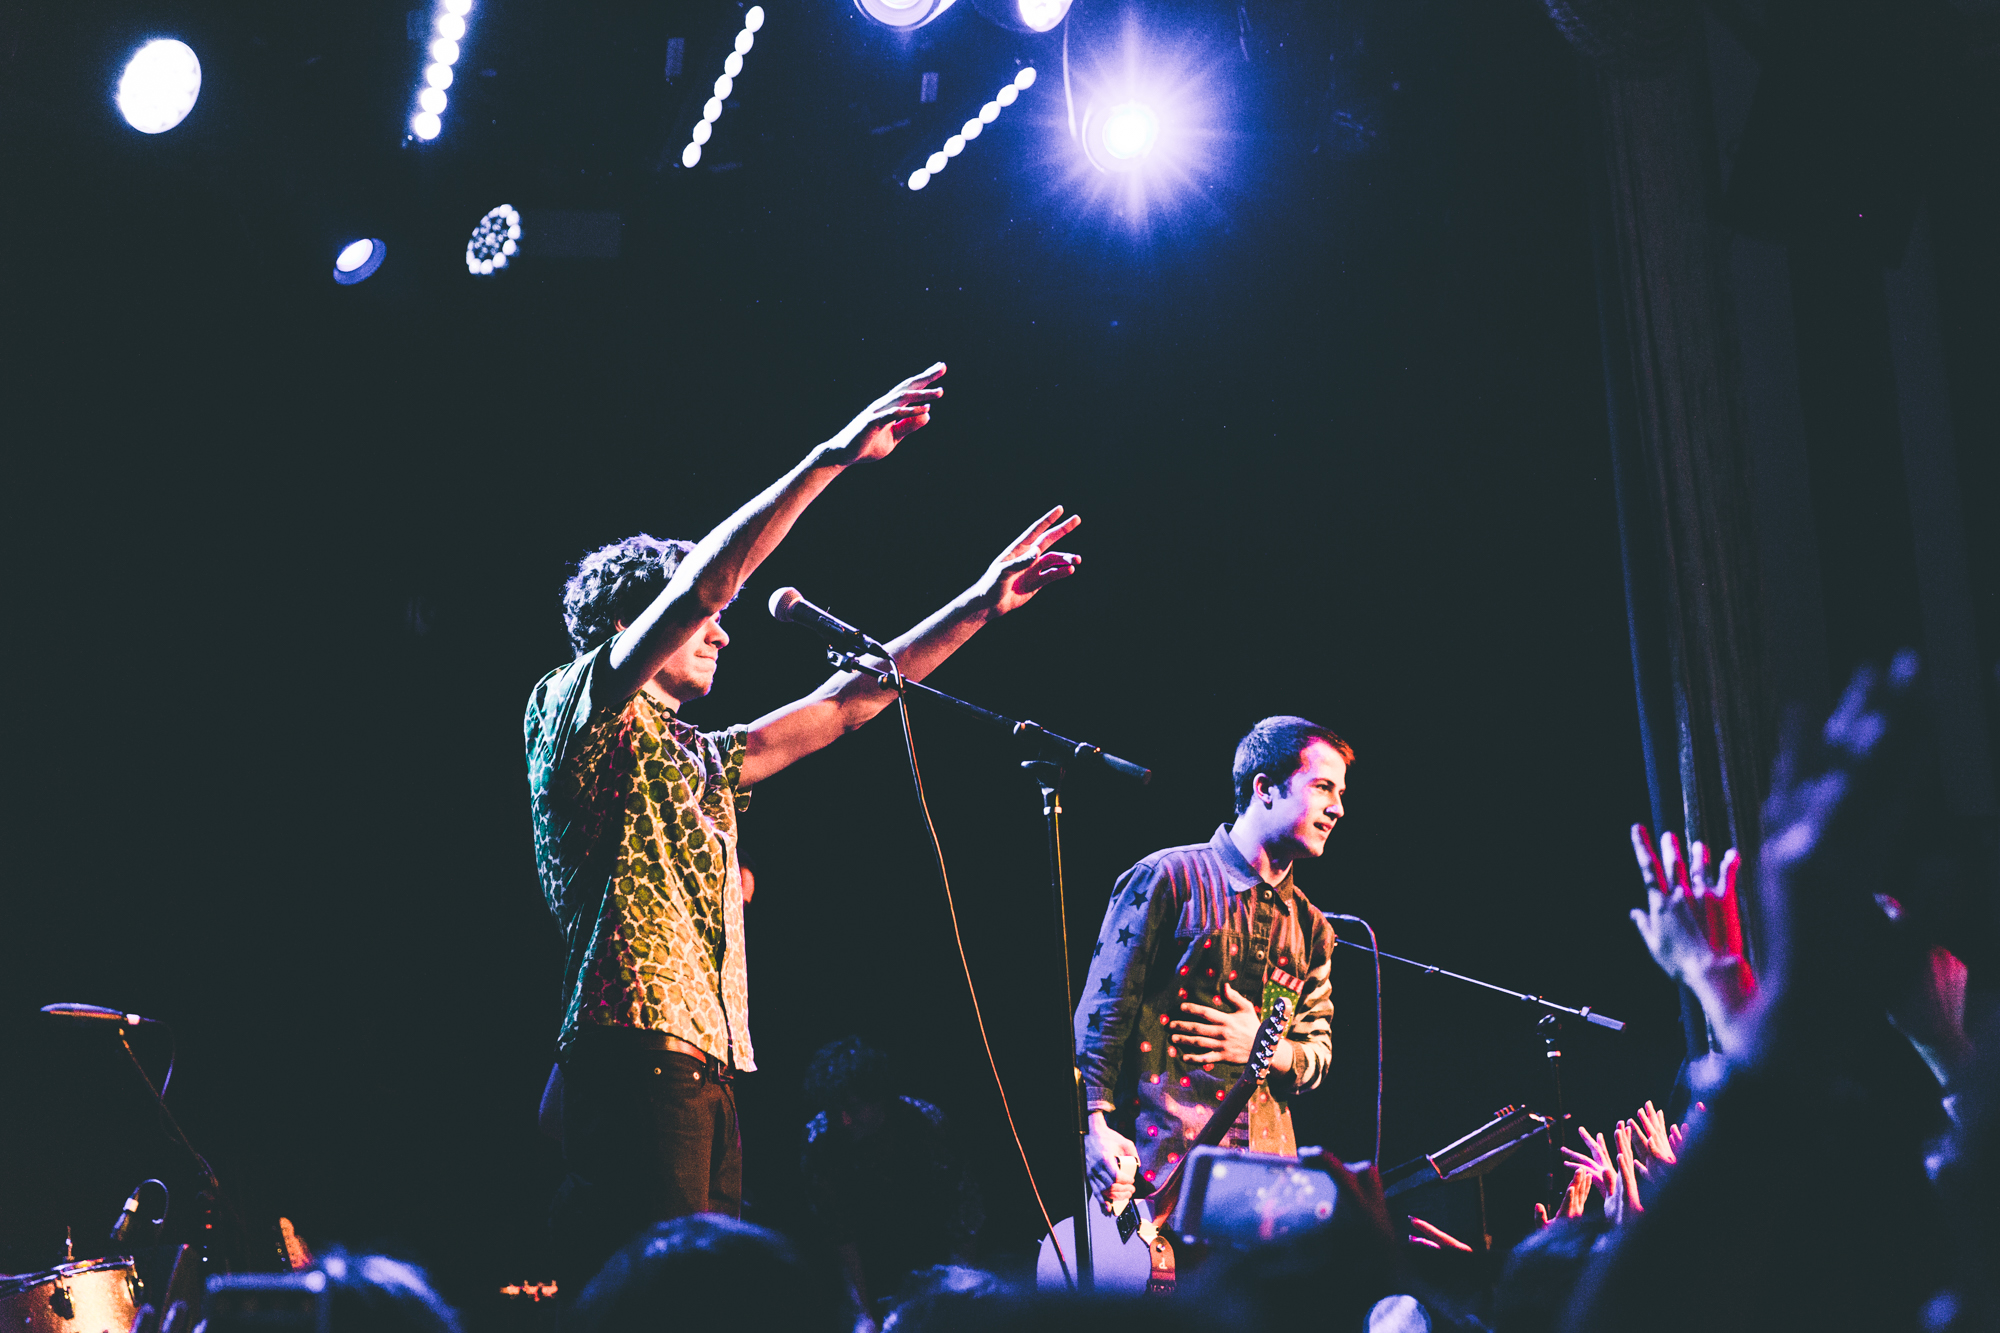 Wallows-20.jpg